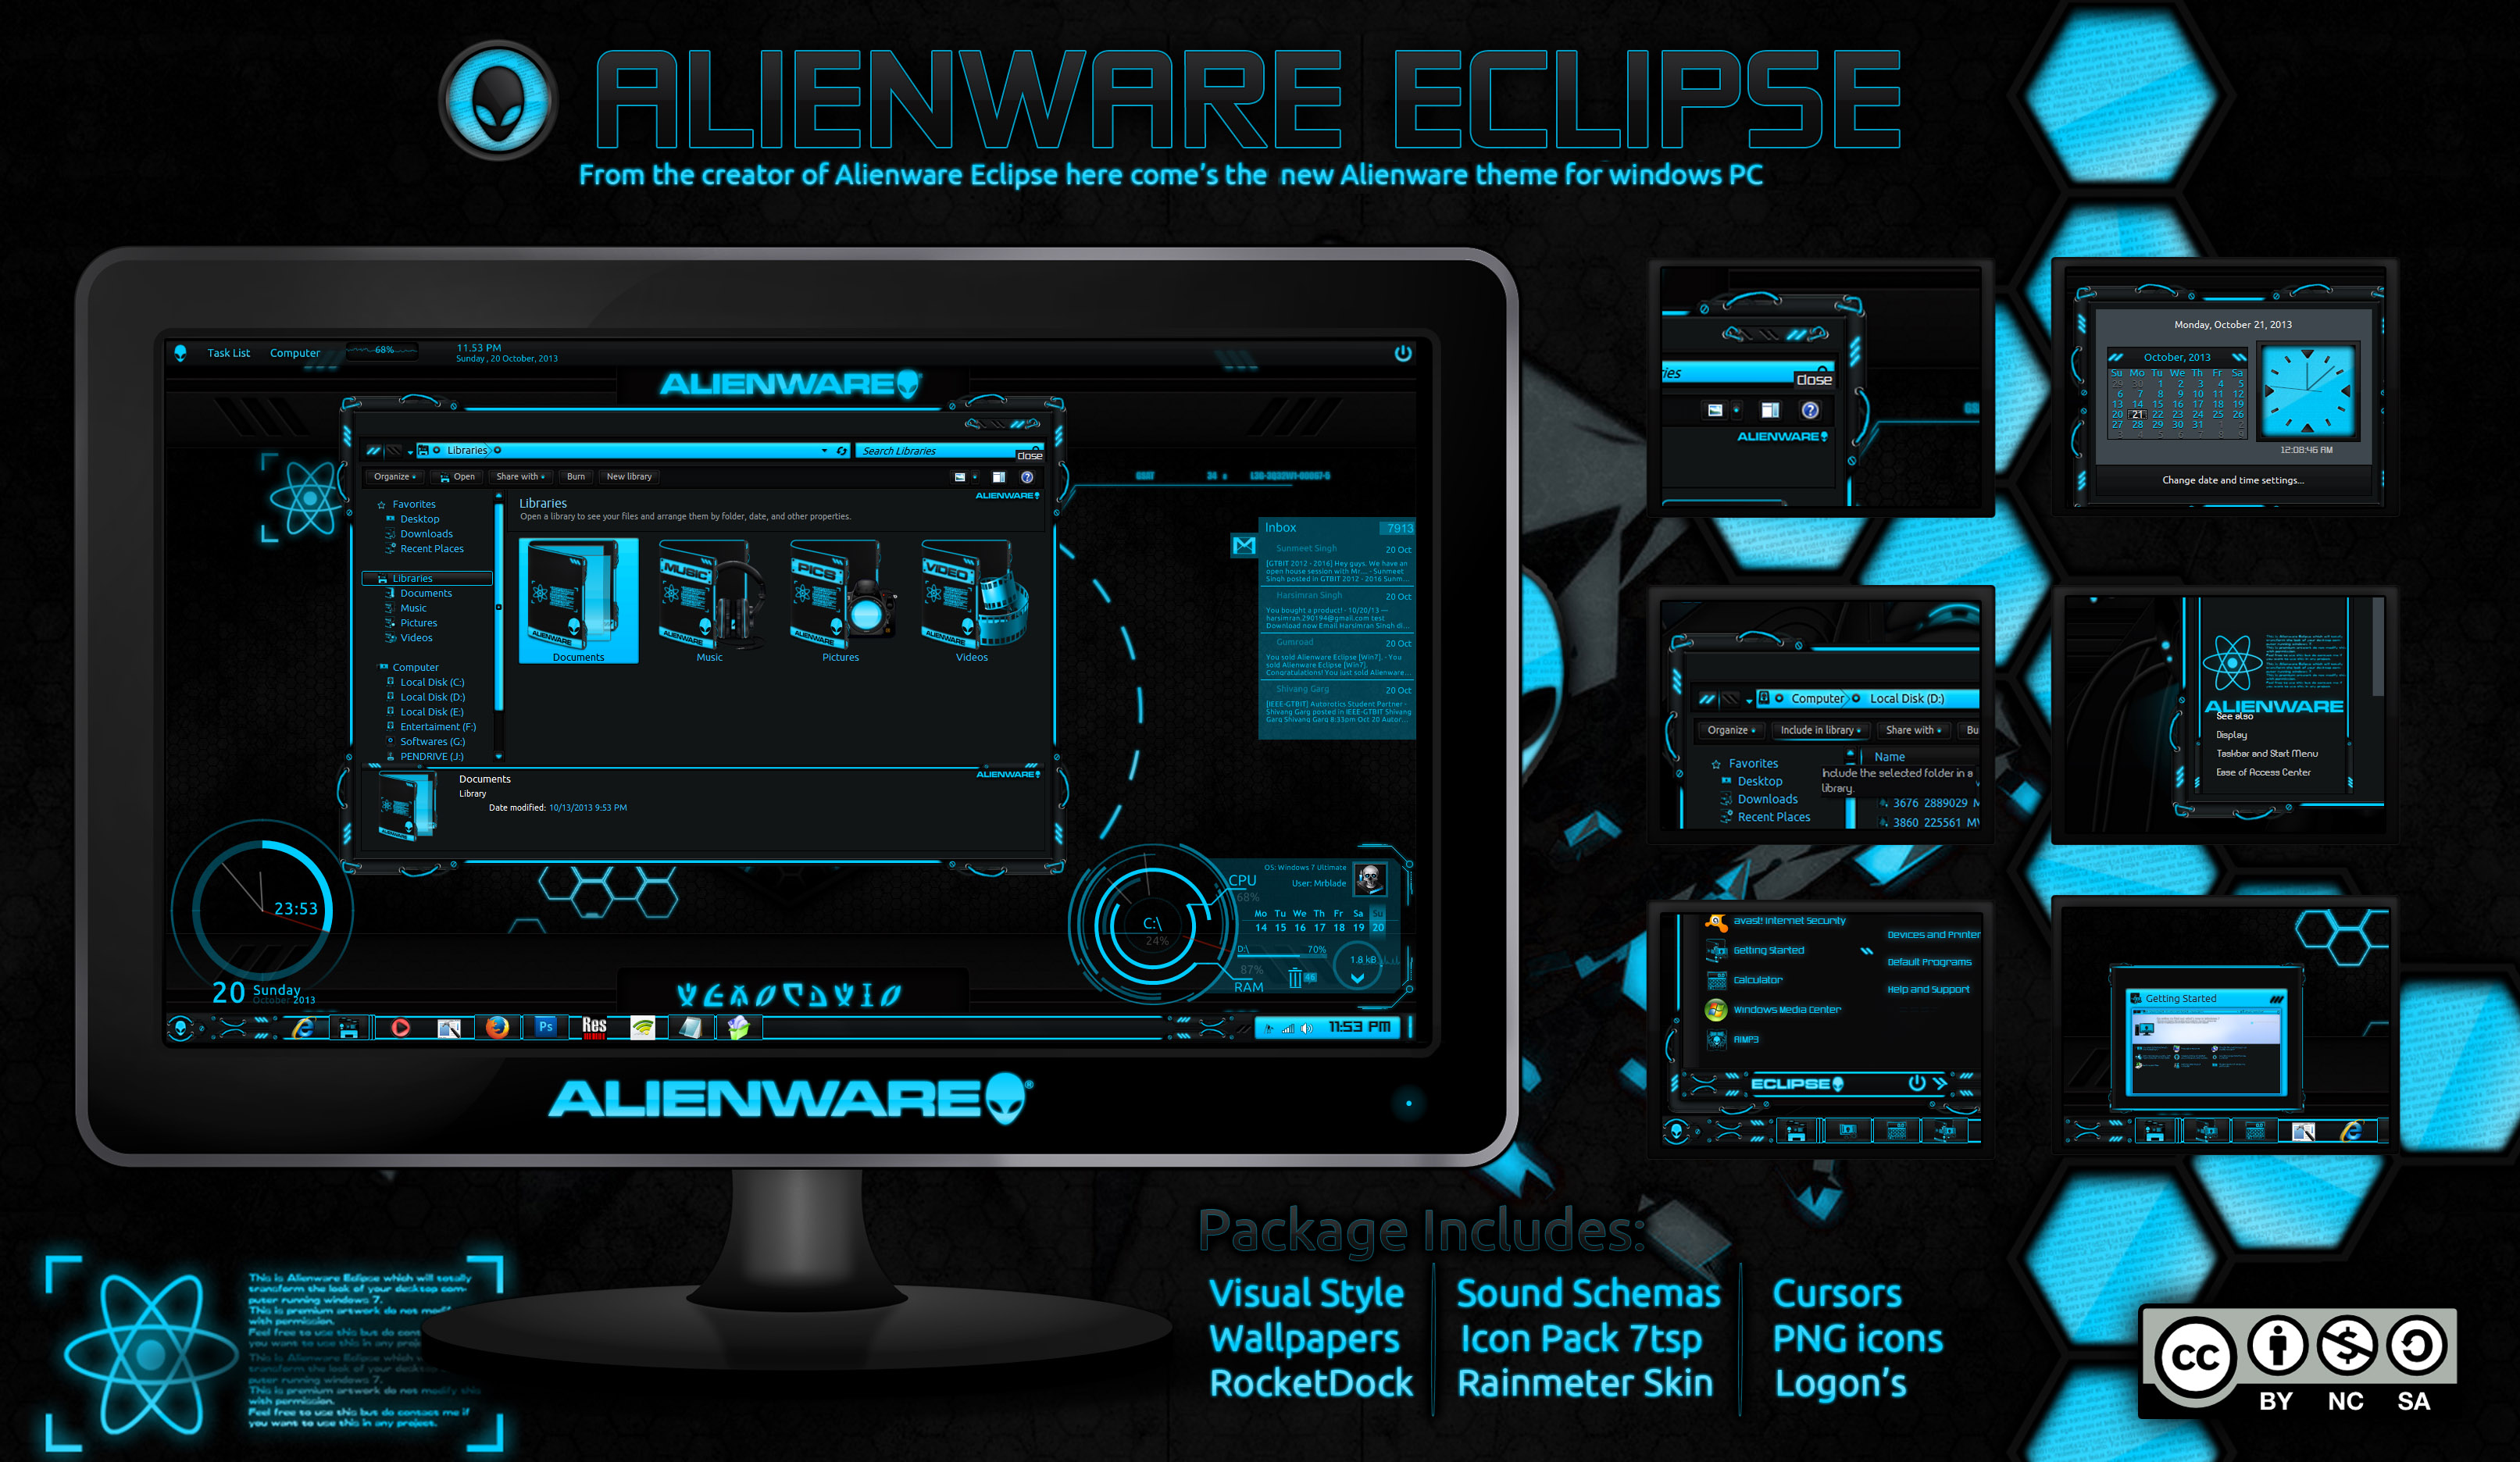 Alienware Eclipse Windows 7